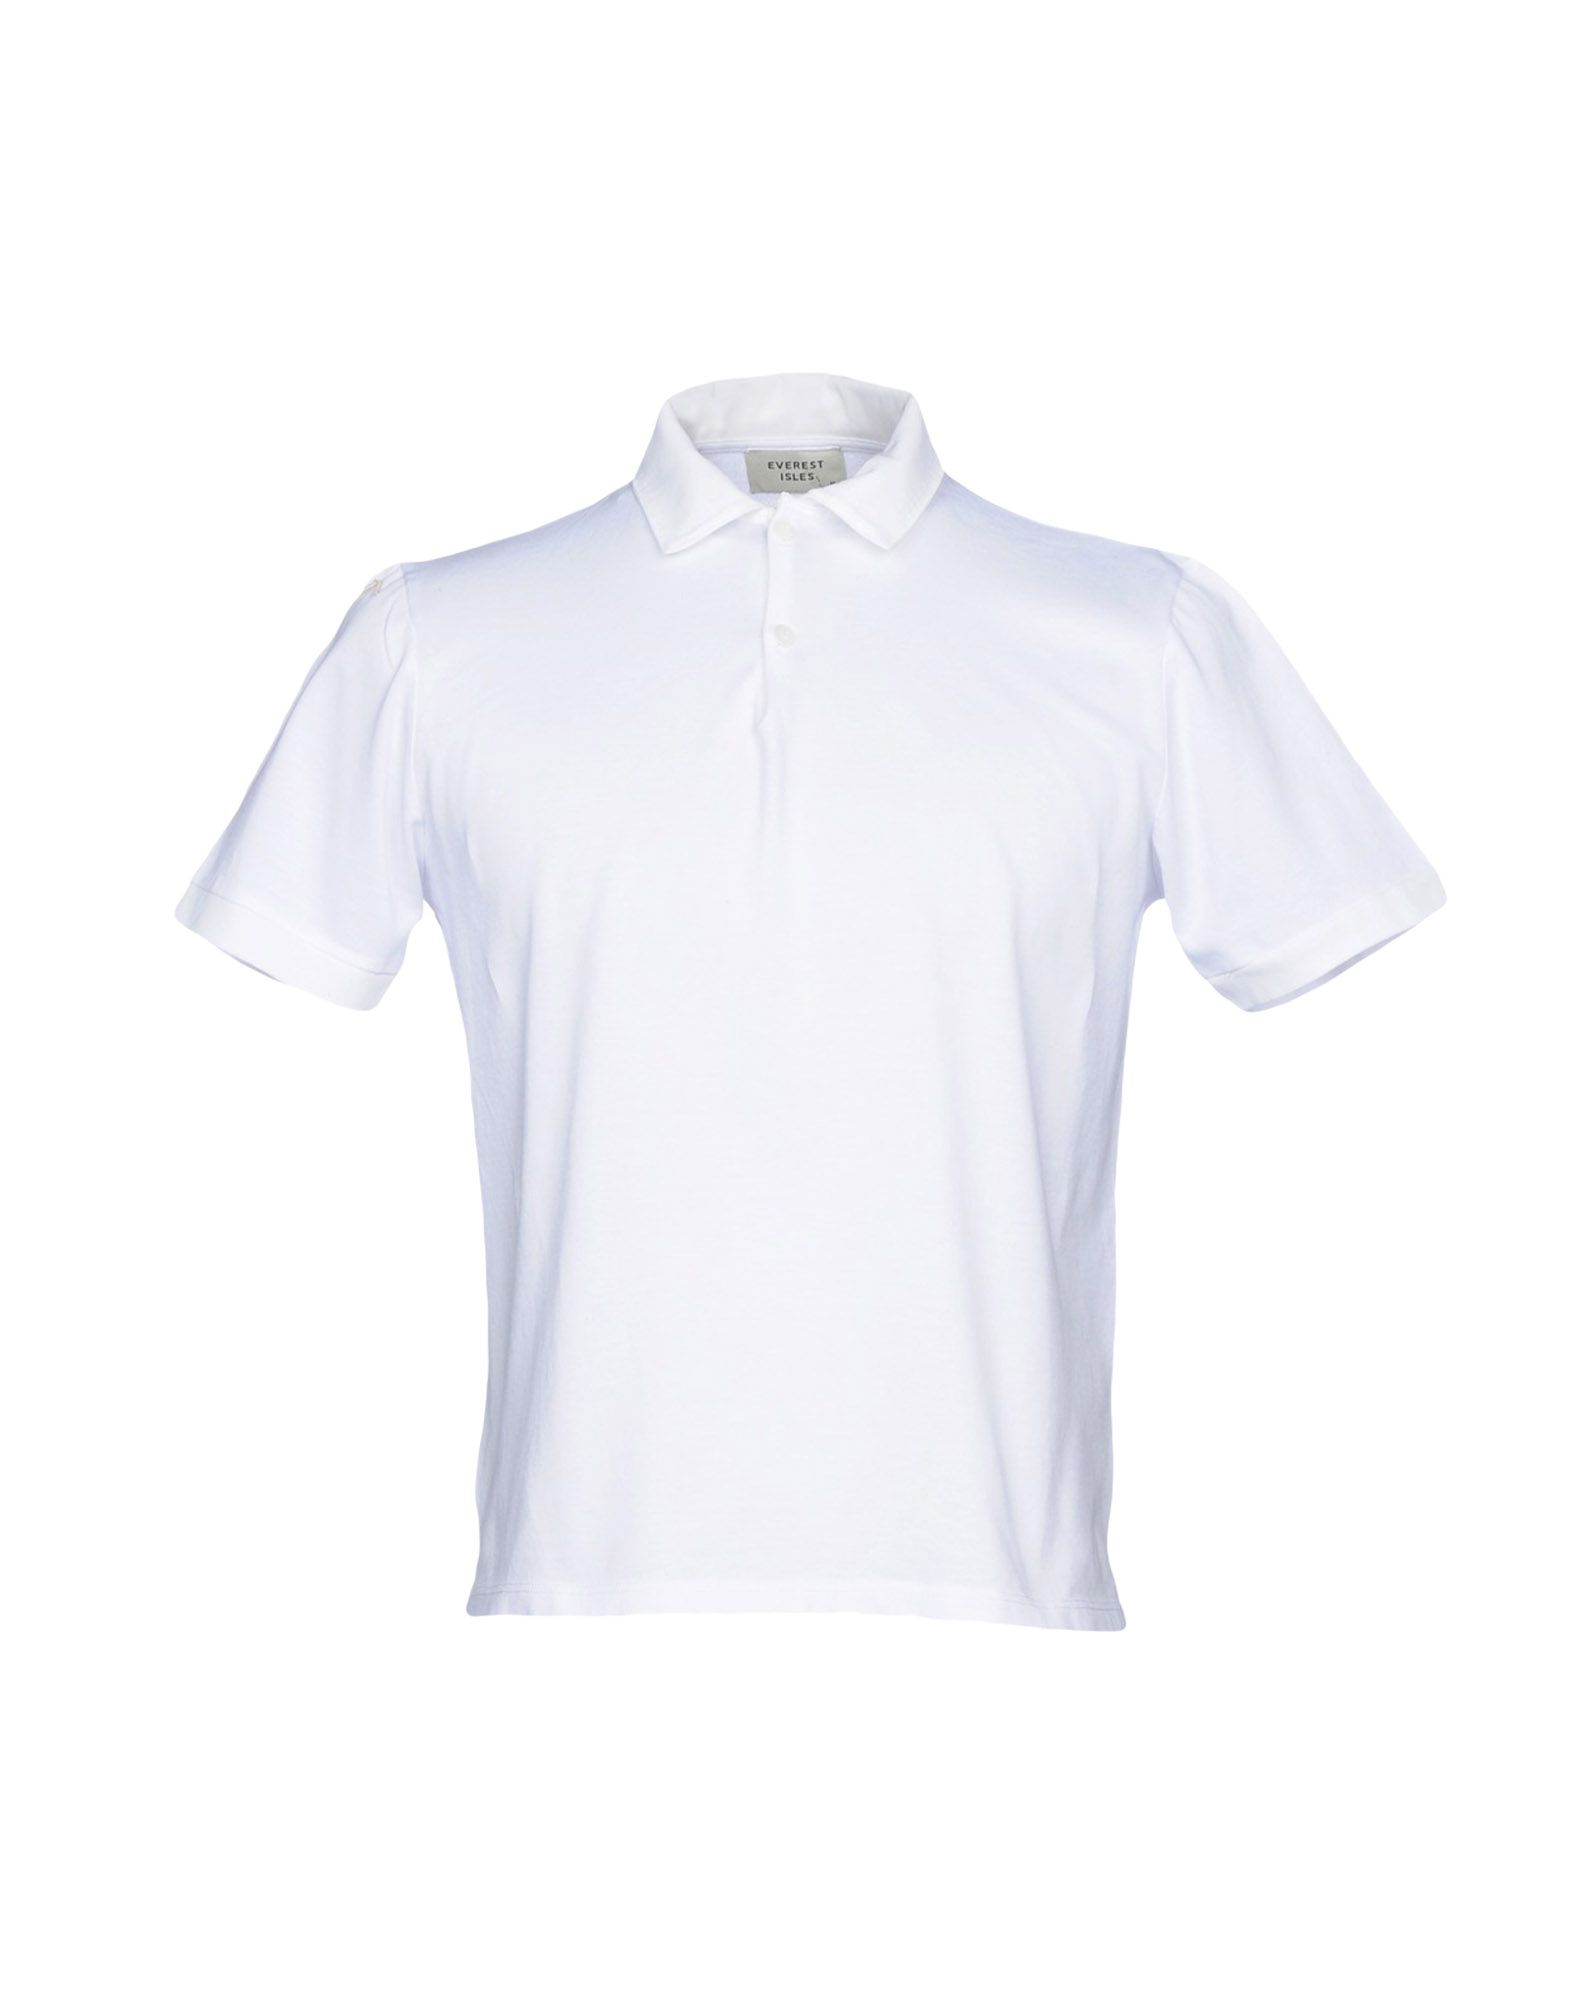 EVEREST ISLES Polo Shirt in White